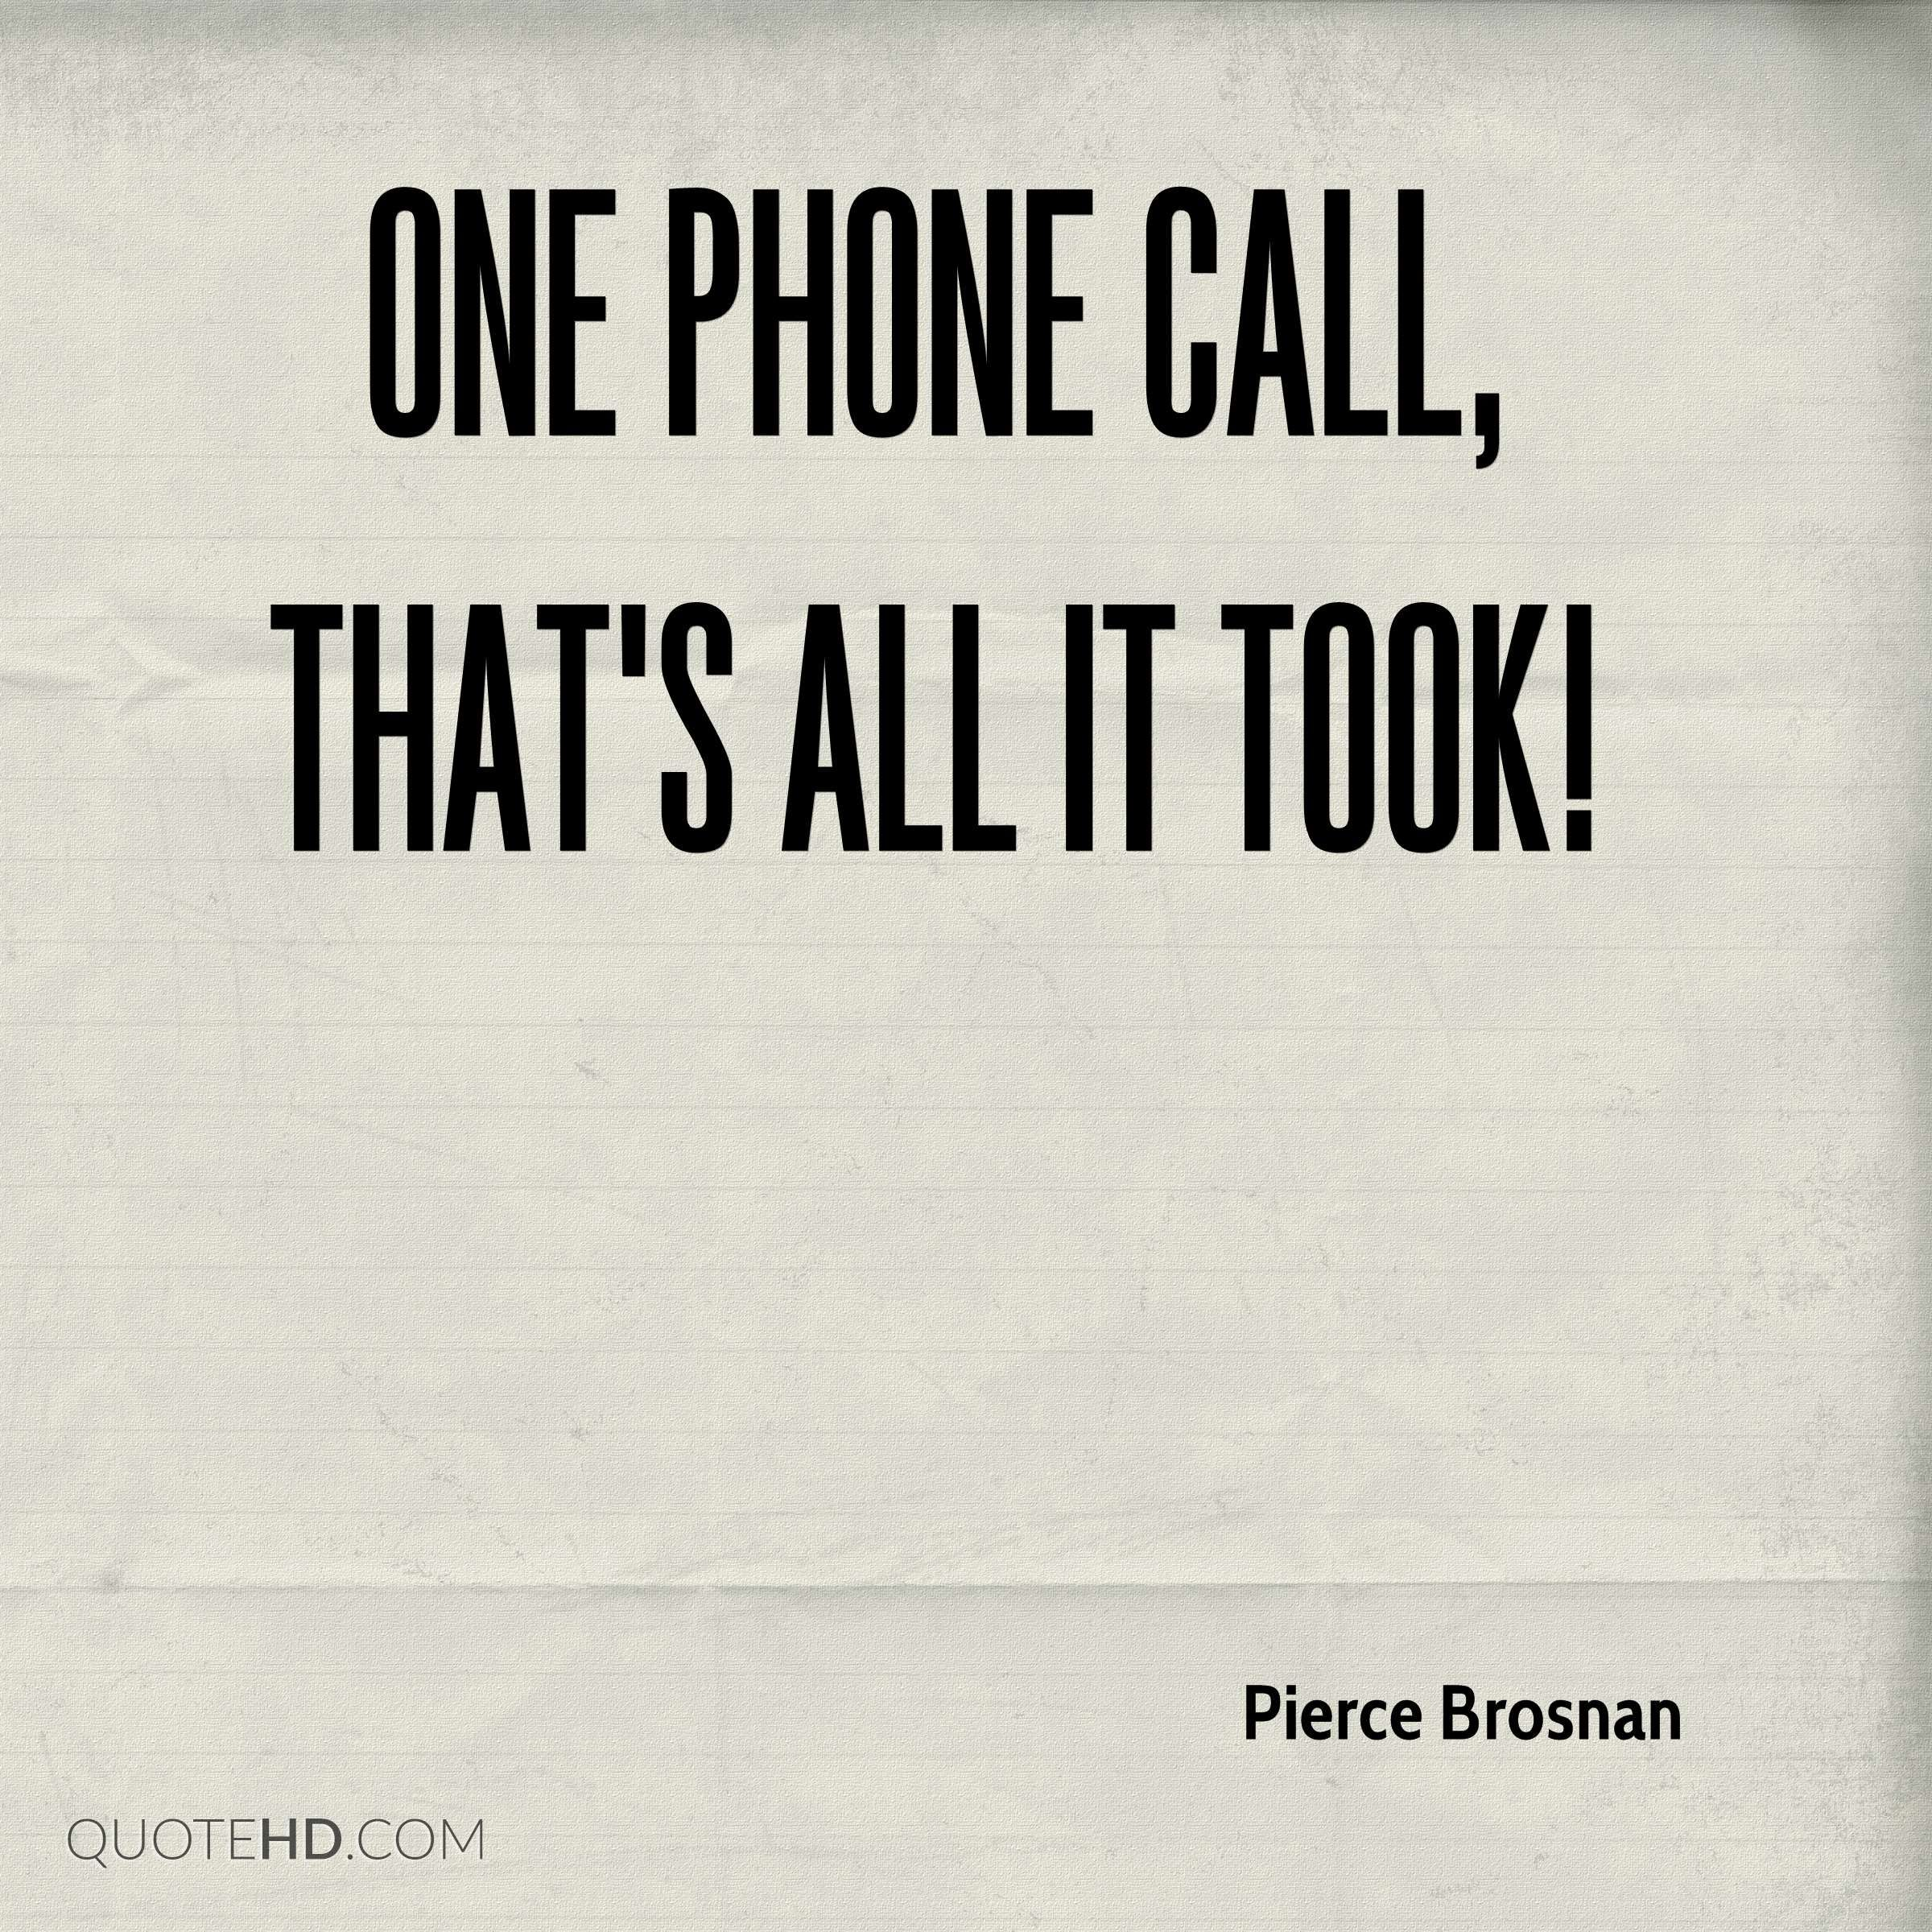 Phone Call Quotes Amusing Piercebrosnanquoteonephonecallthatsallittook 2400×240